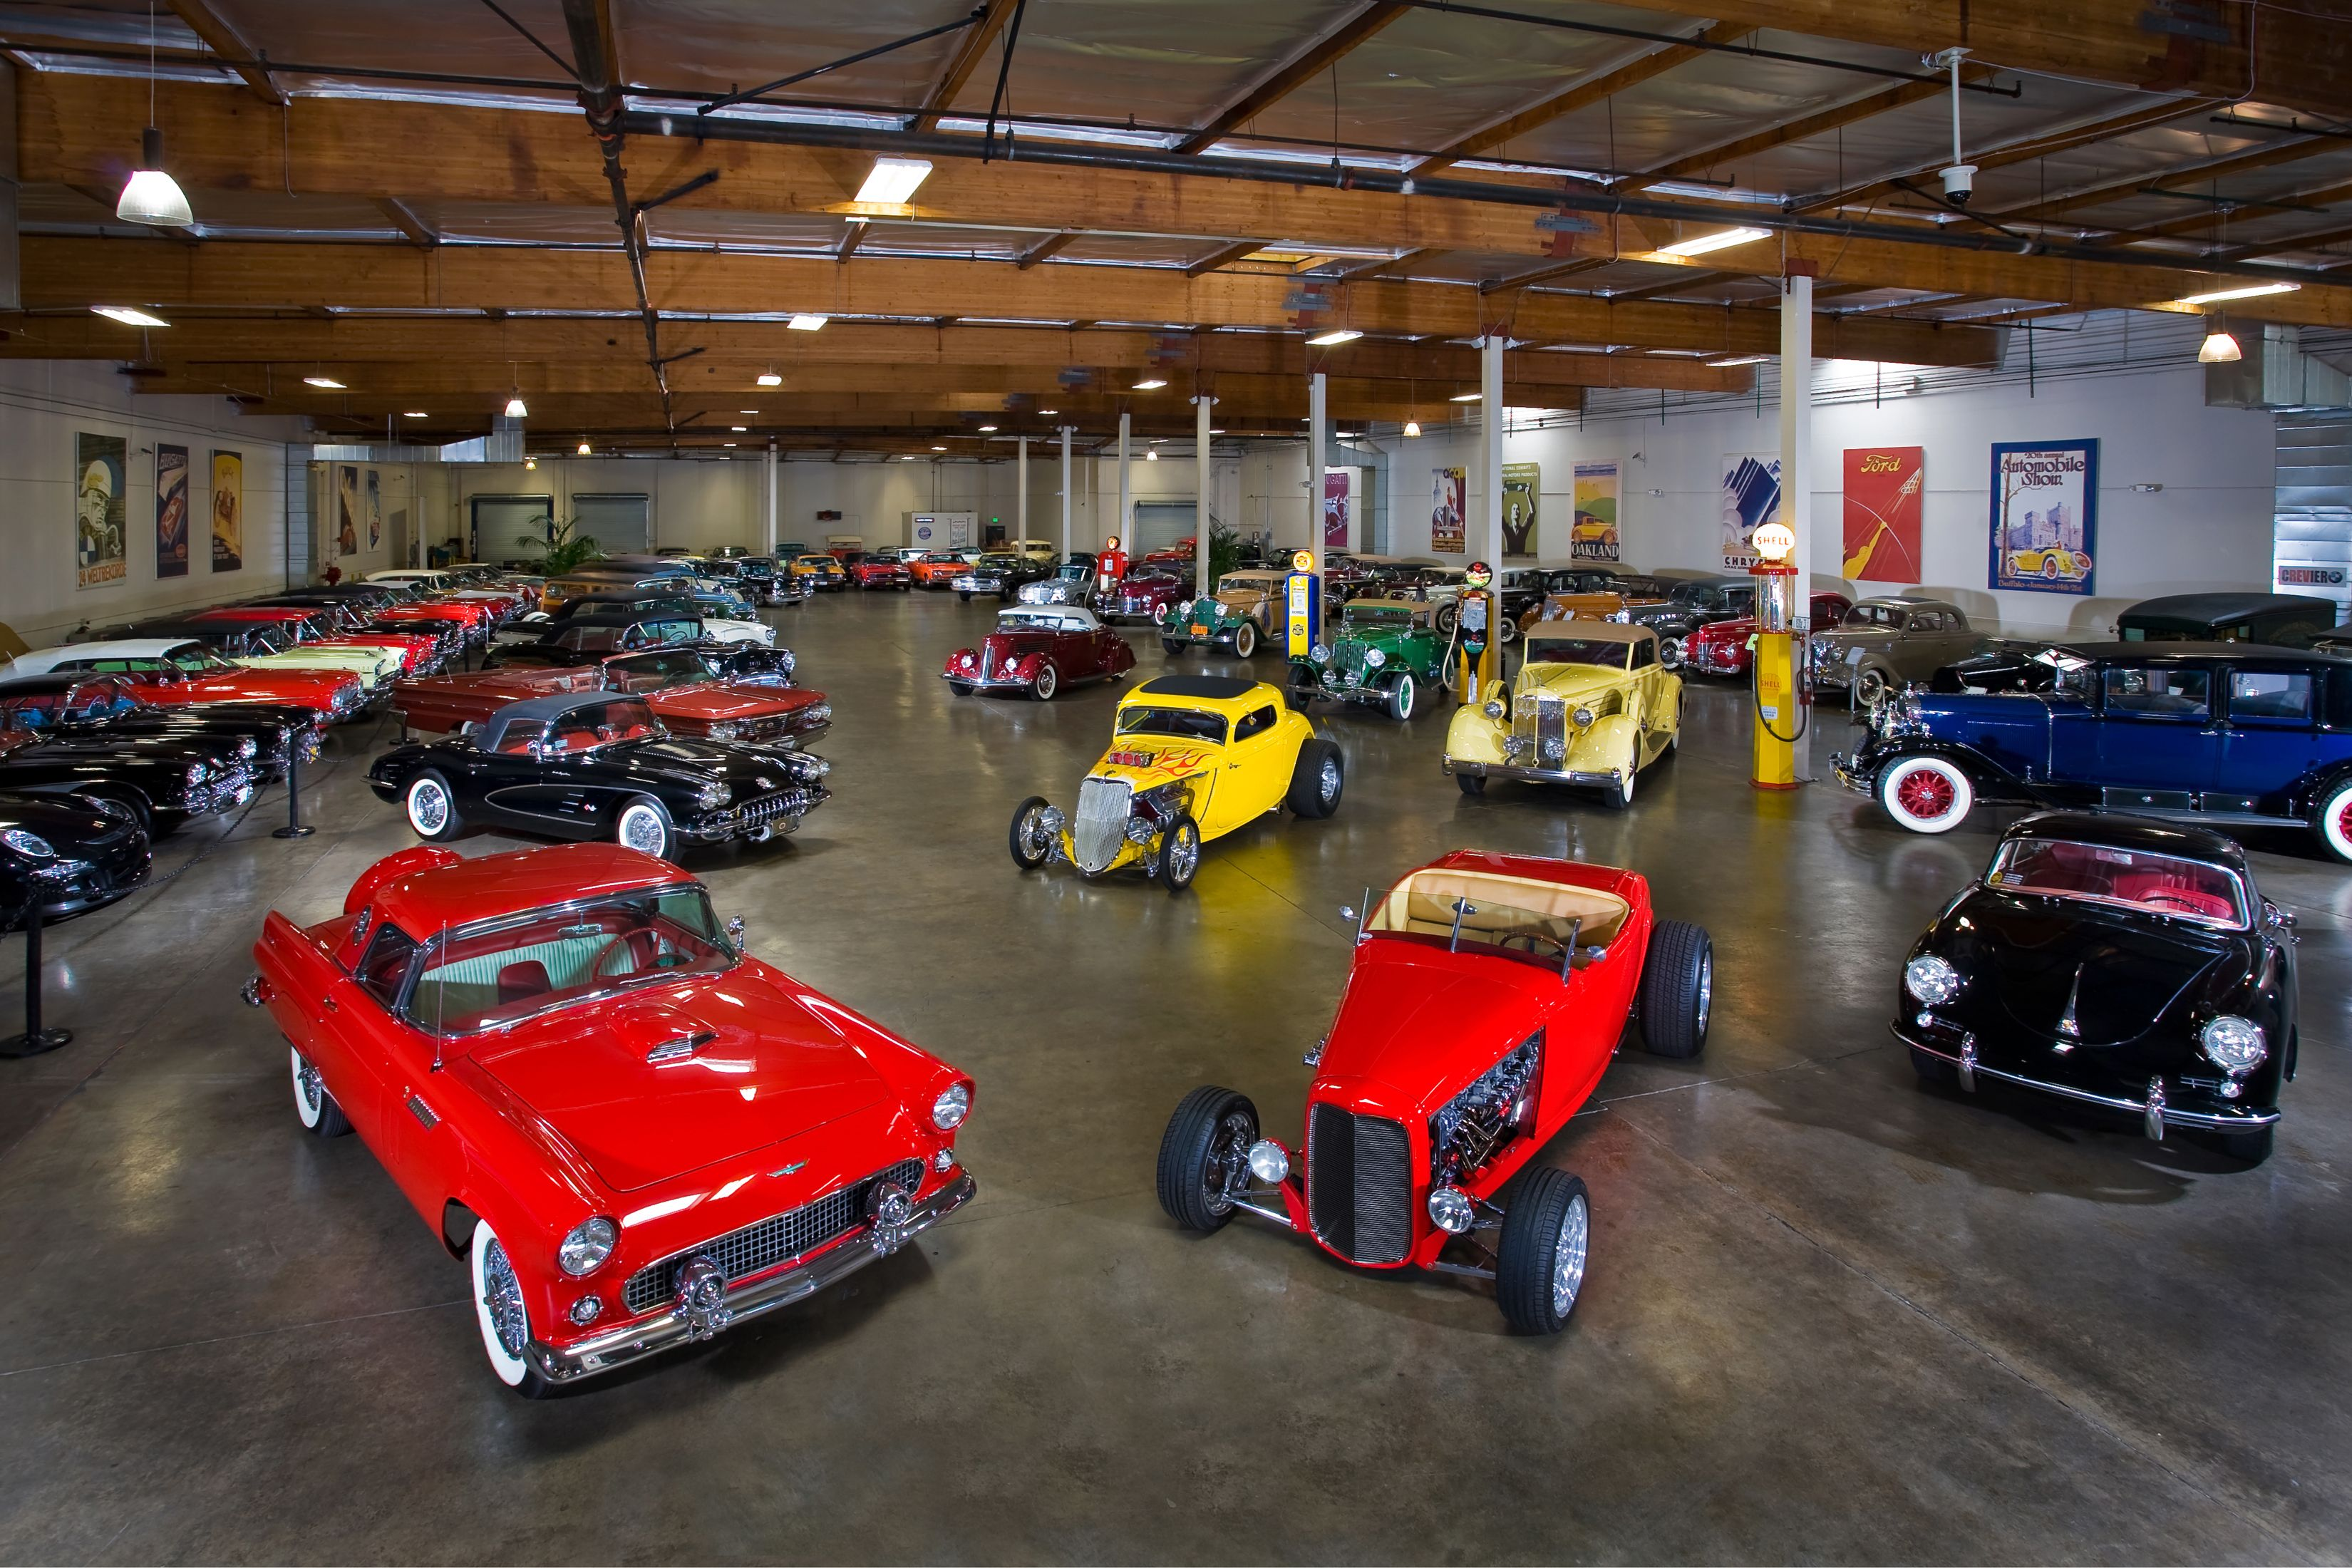 The Garage Toy Car Classic Cars Car Lover